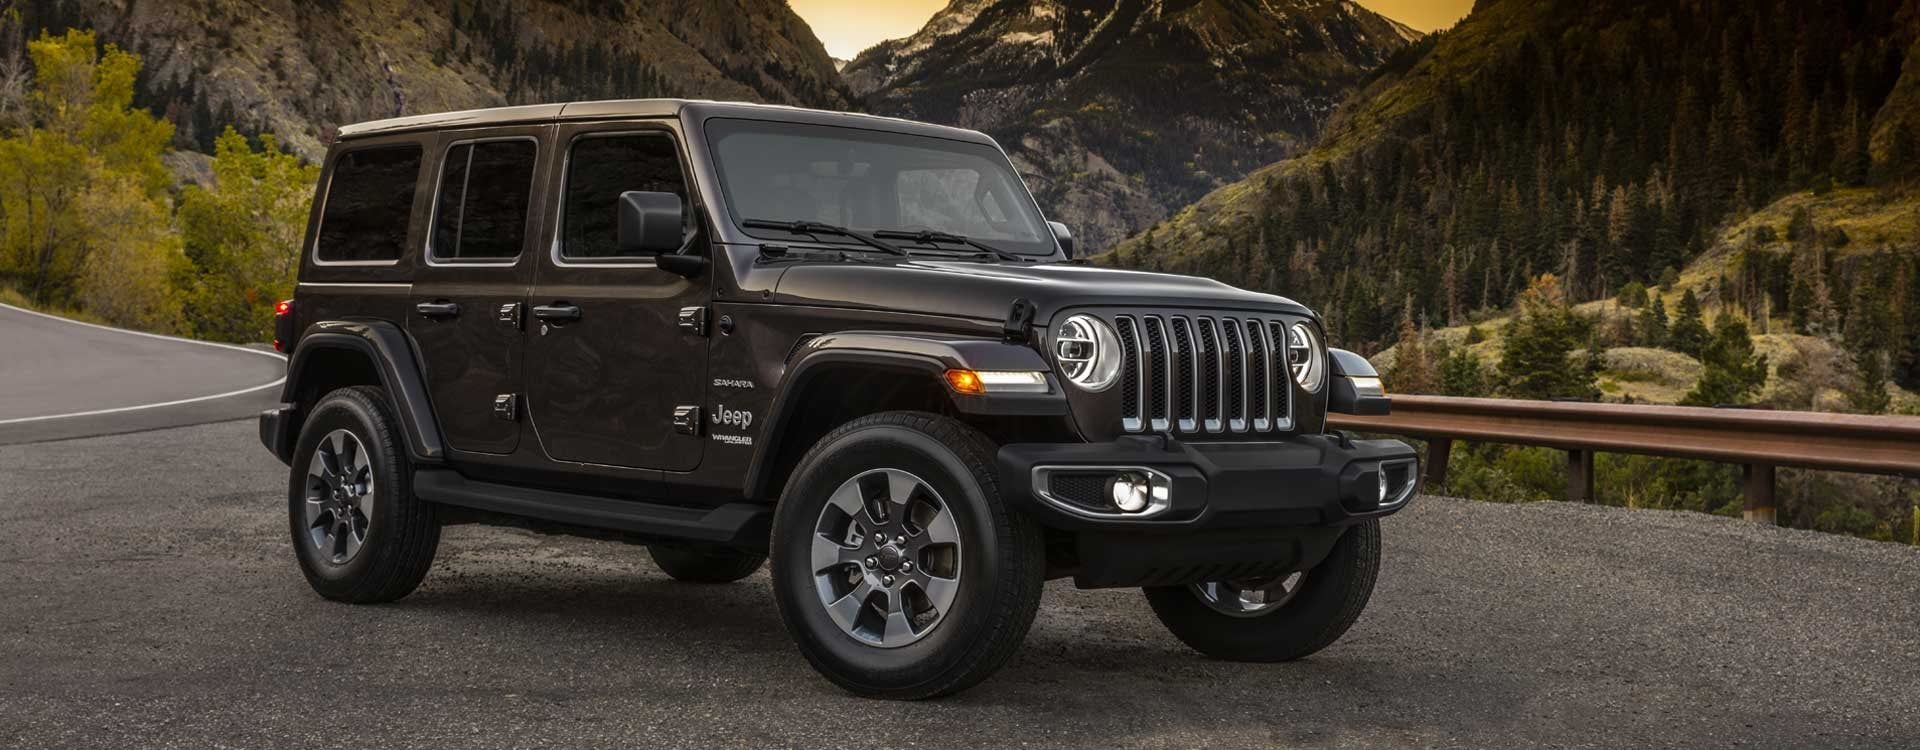 Jeep Dealership Indianapolis >> Jeep Dealer In Indianapolis In Used Car Dealership Tom O Brien